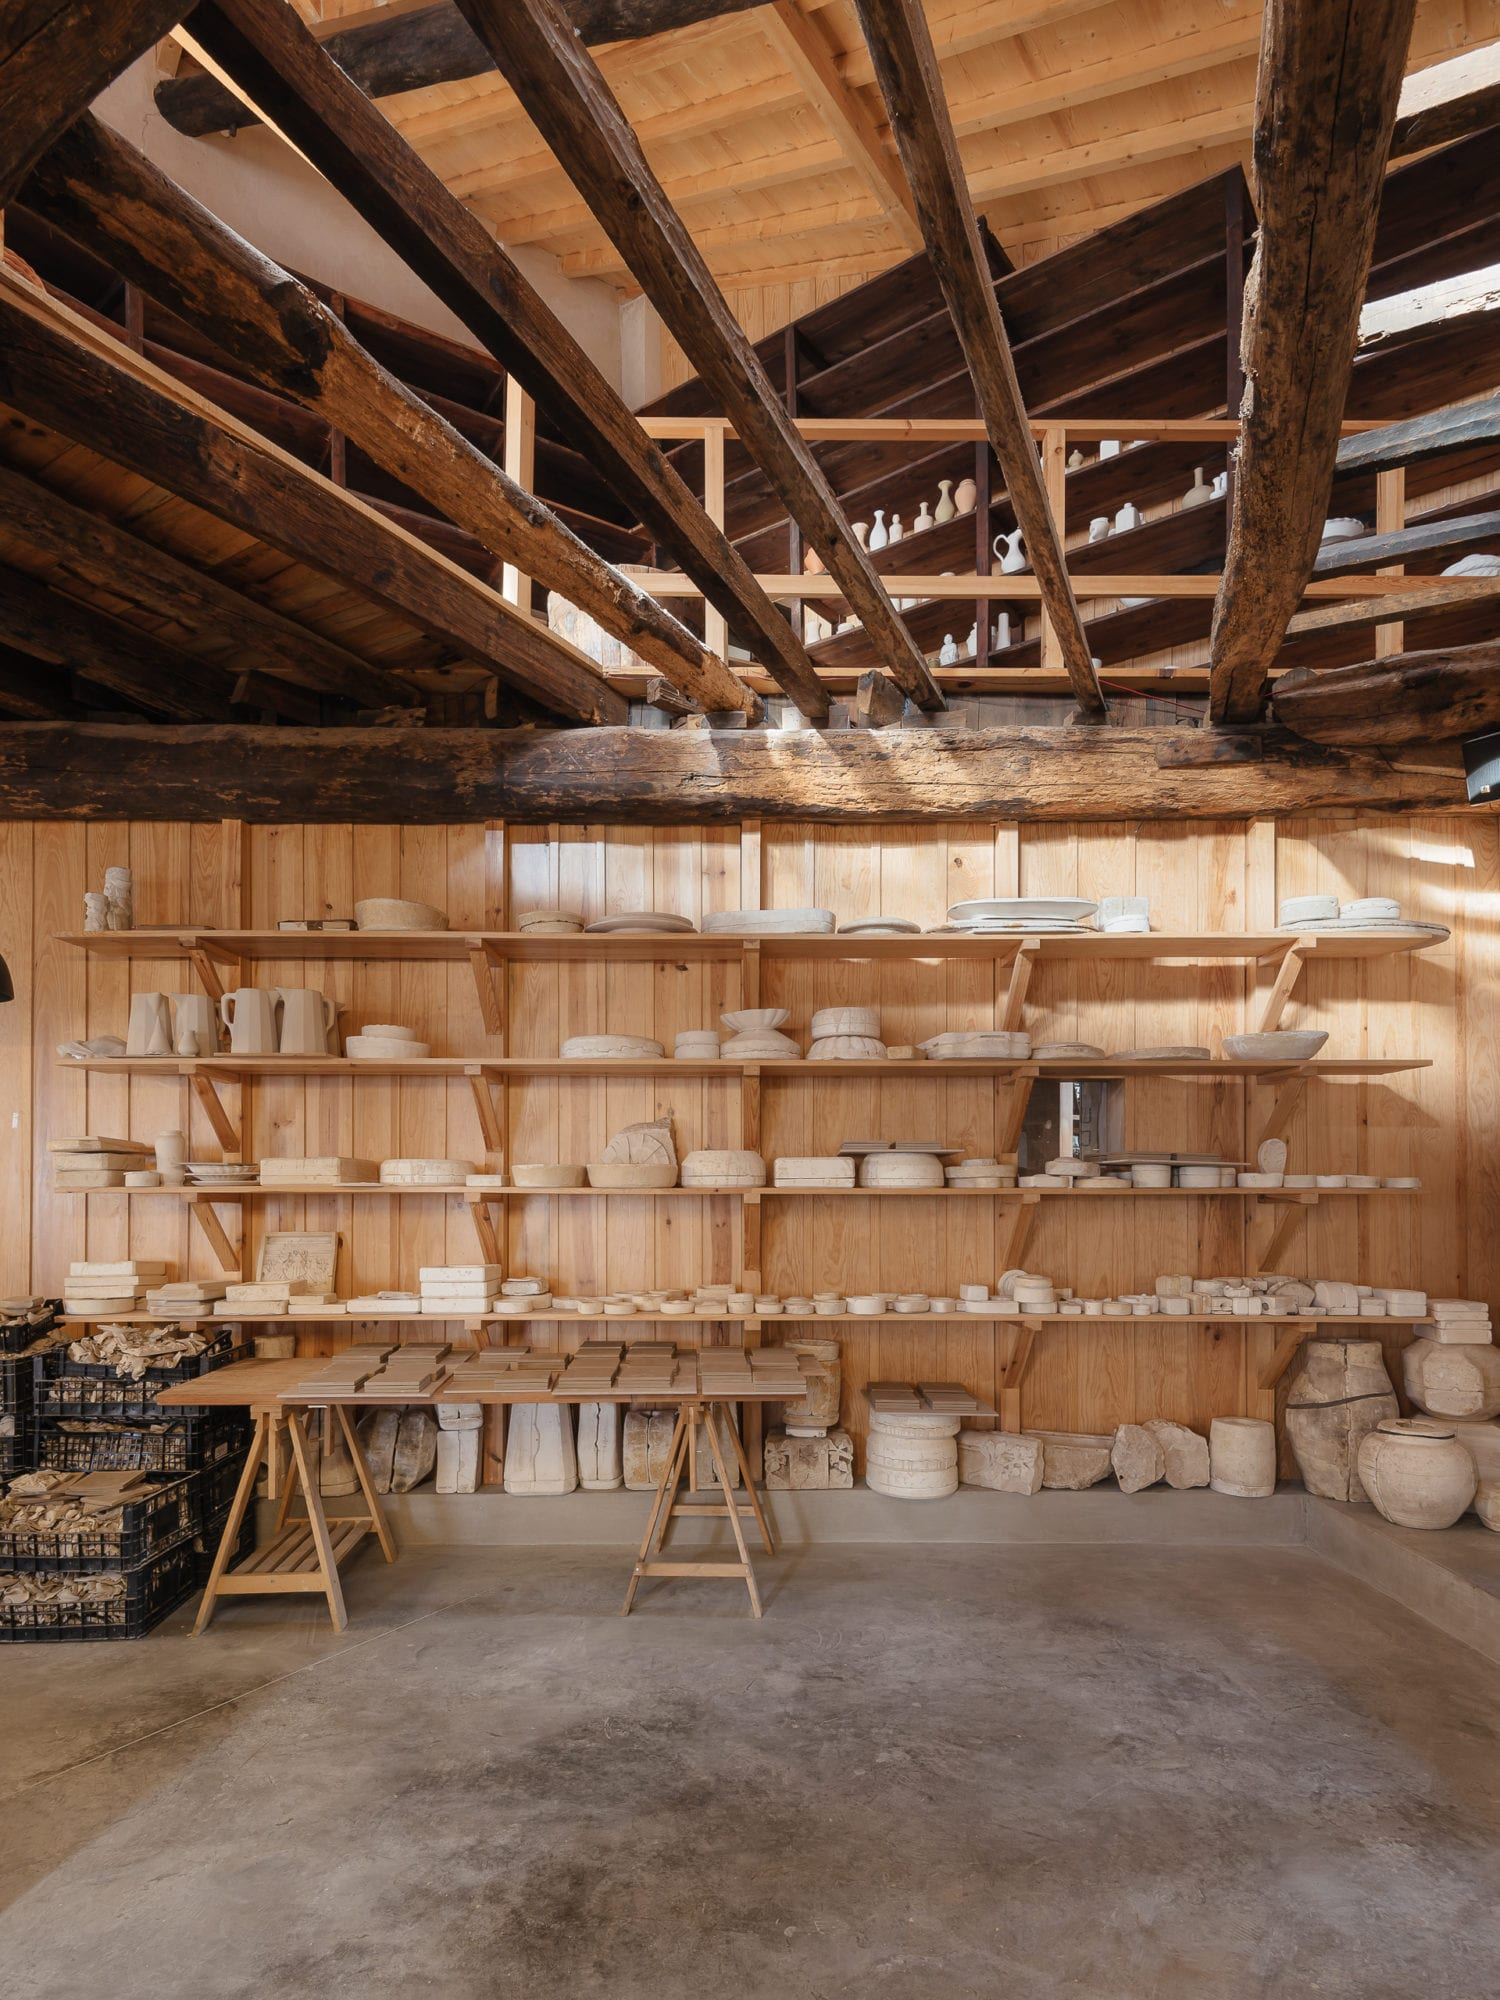 Luisa Bebiano And Atelier Do Corvo Renovation Old Ceramic Society Of Coimbra 18th Century Building Yellowtrace 12